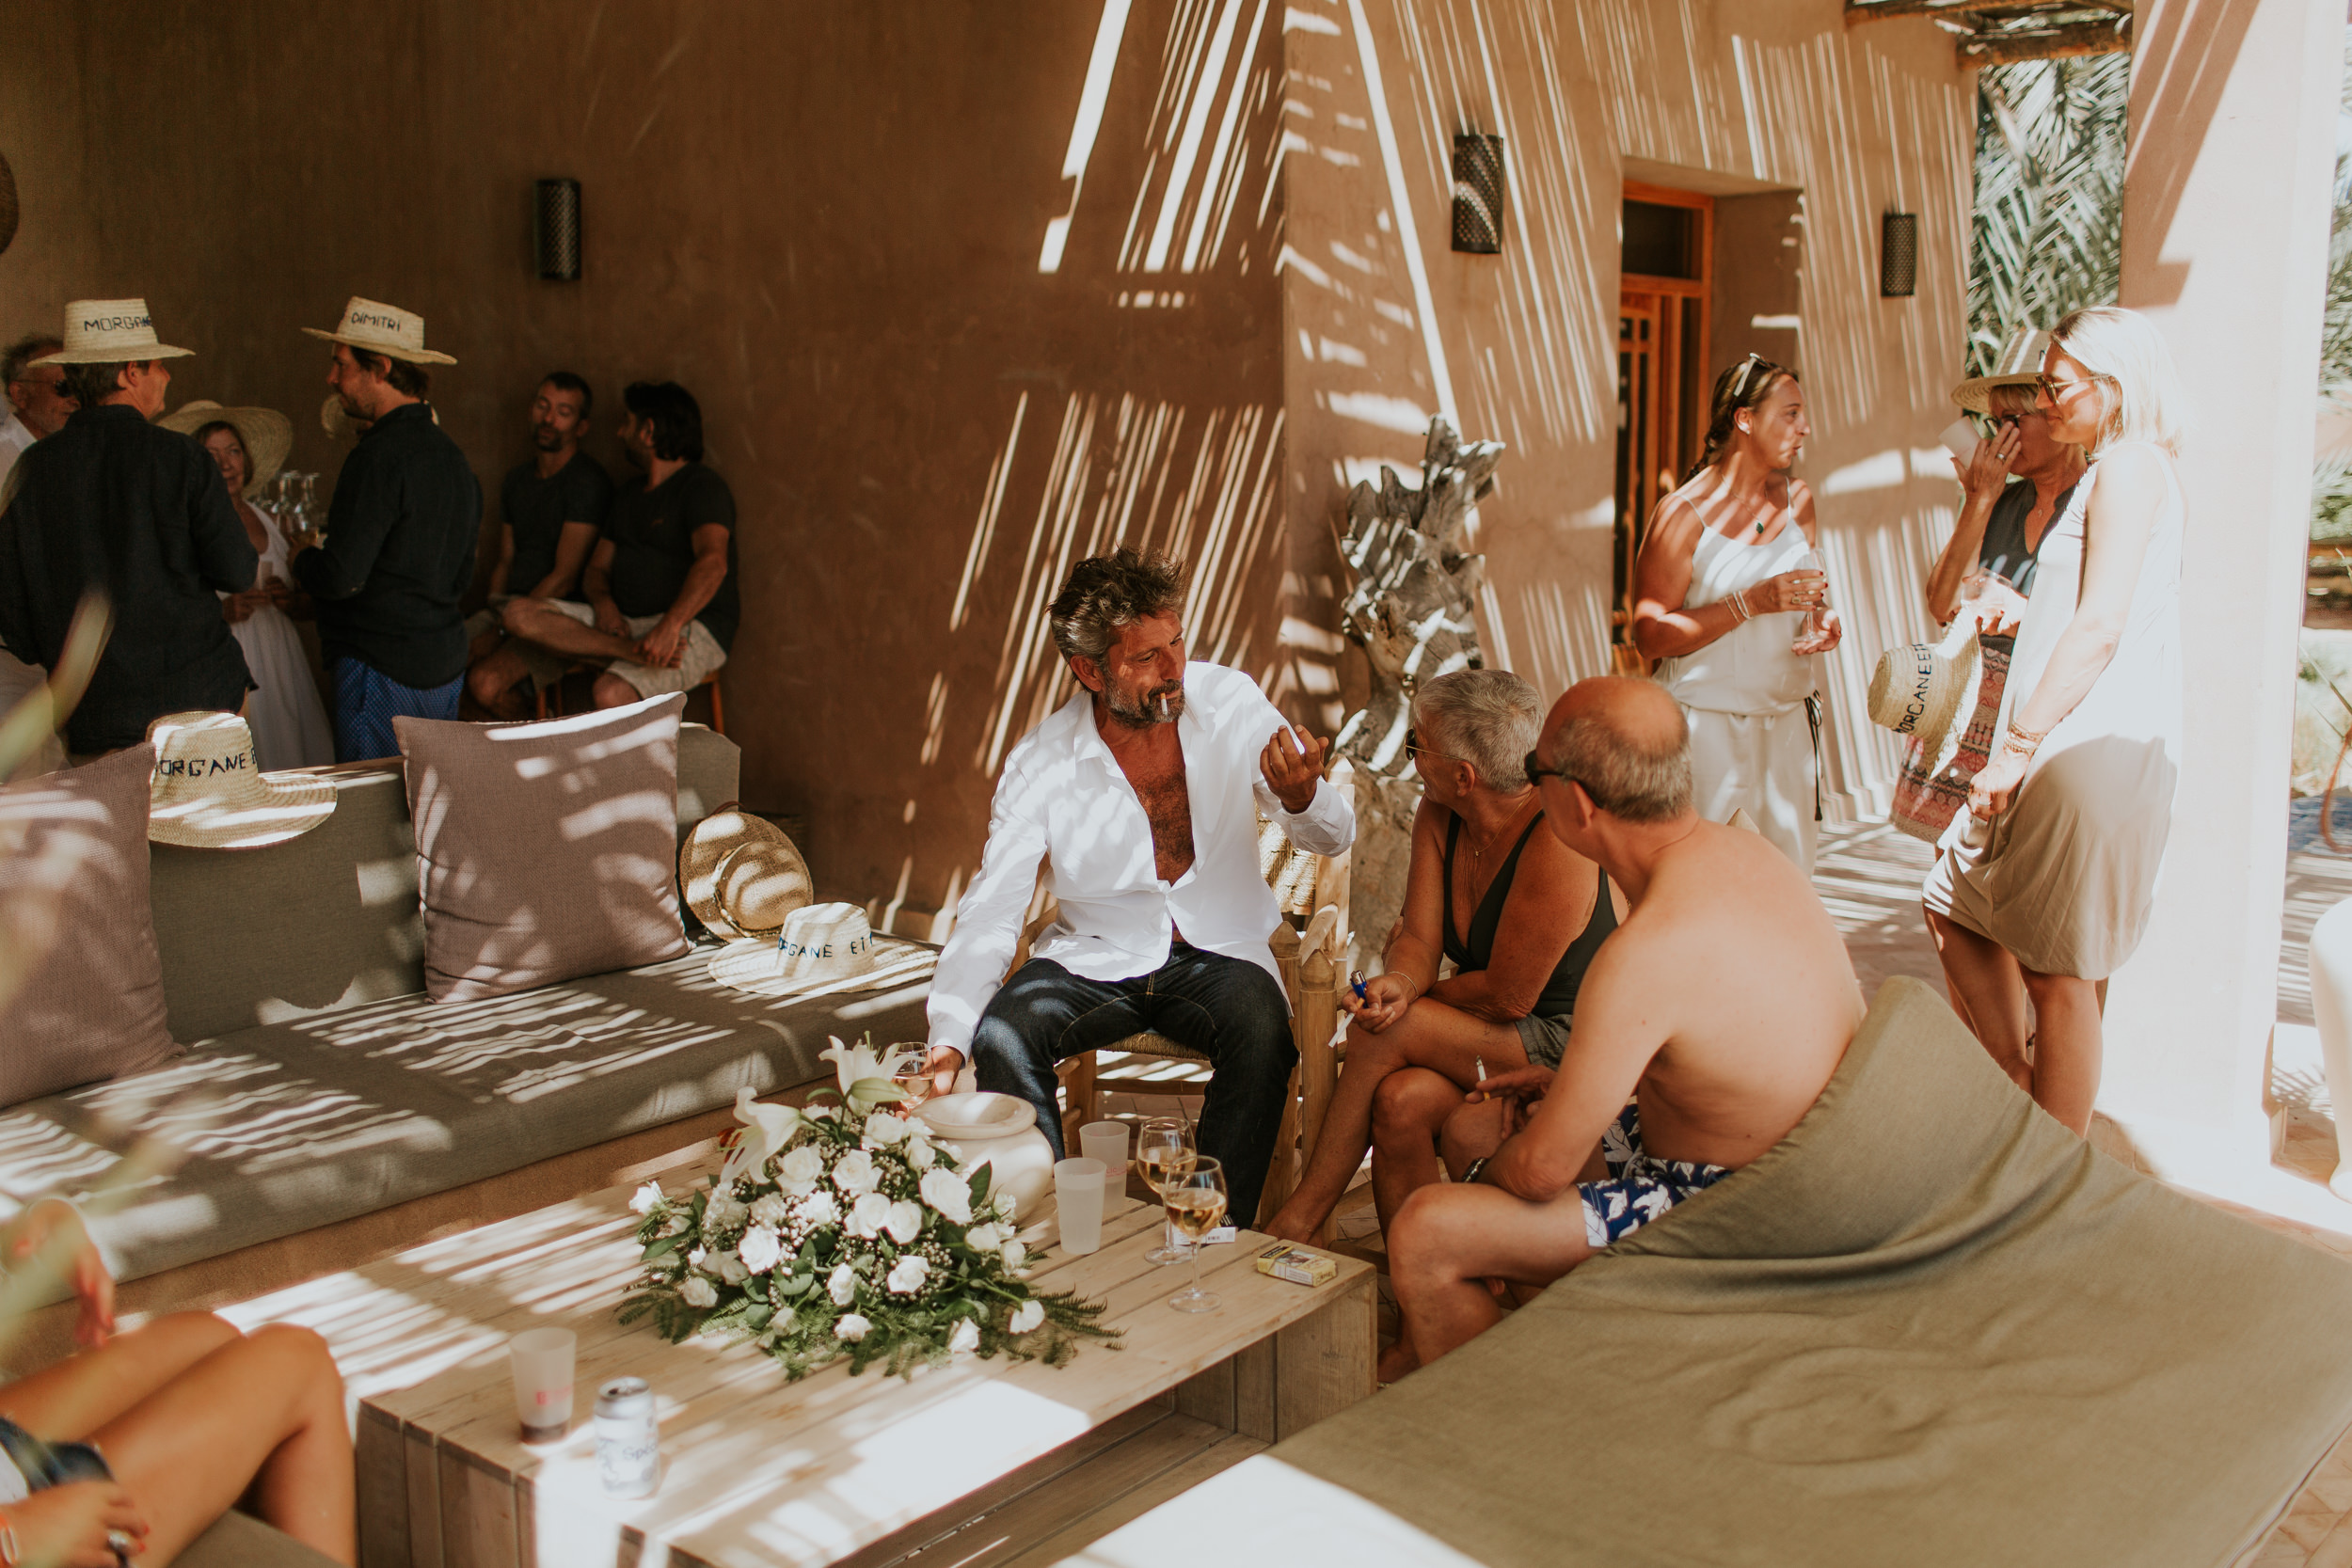 morganedimitri_davidmaire_marrakech_destinationwedding-291.jpg